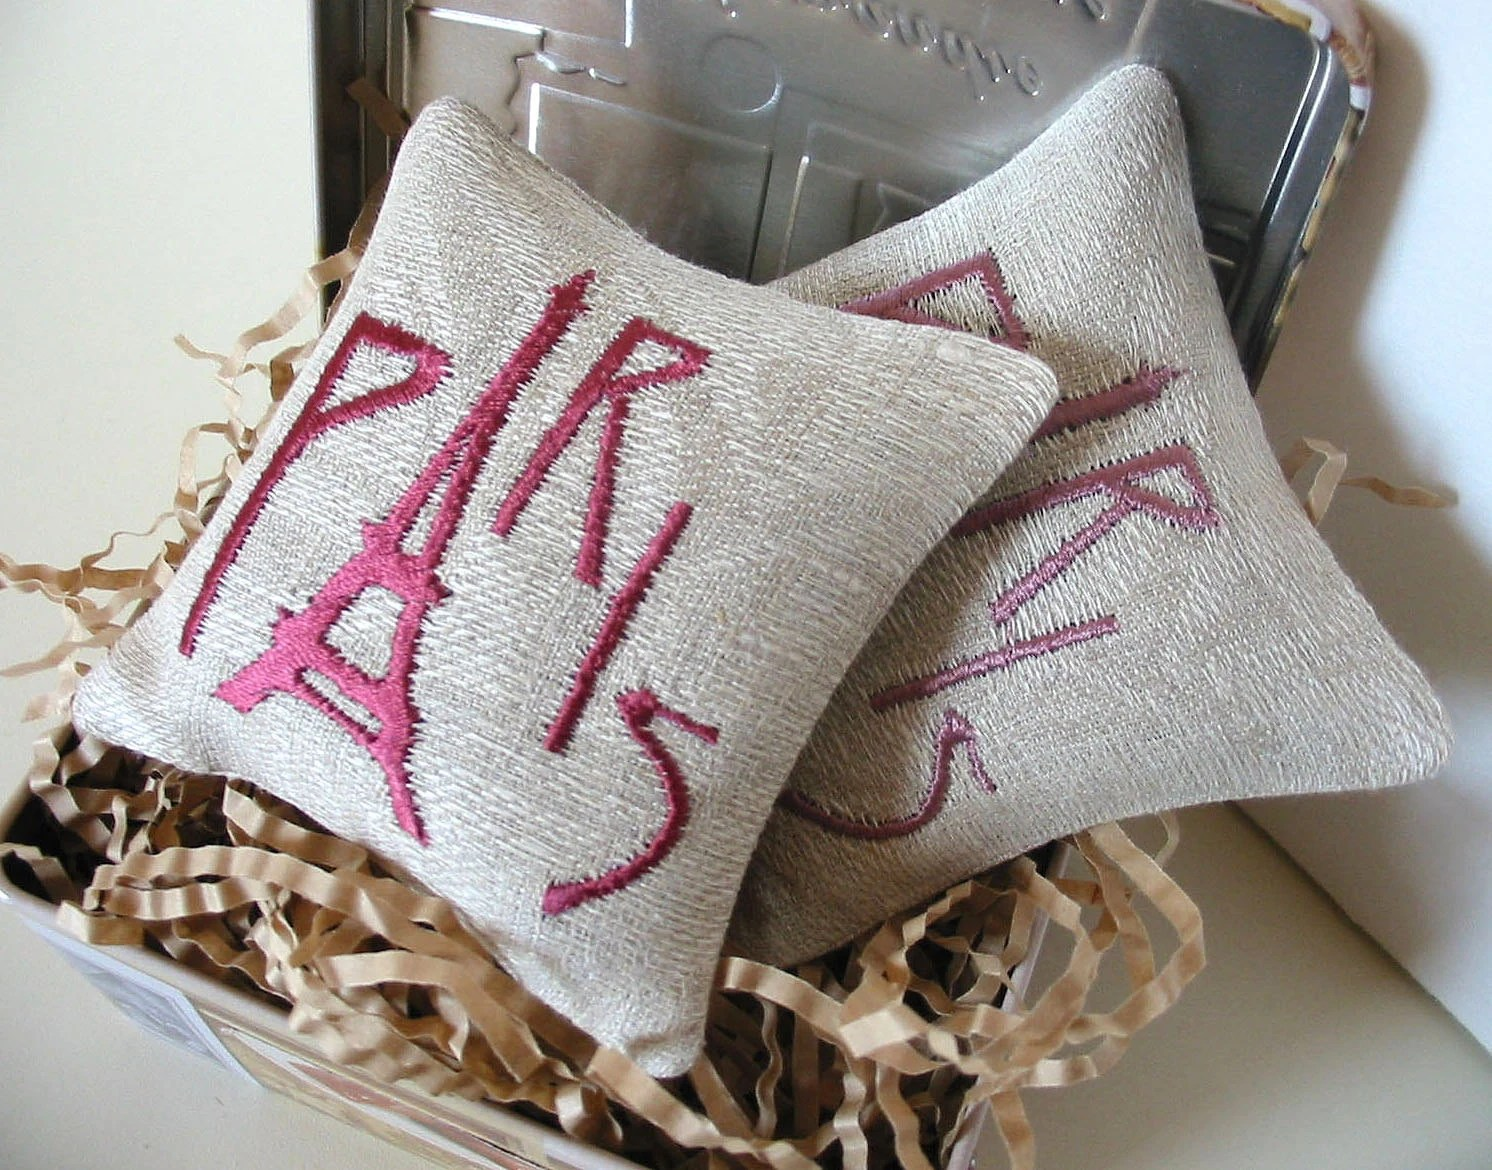 Lavender Sachets PARIS - Set of Two Embroidered Linen Cushions - tbteam - BelleCoccinelle